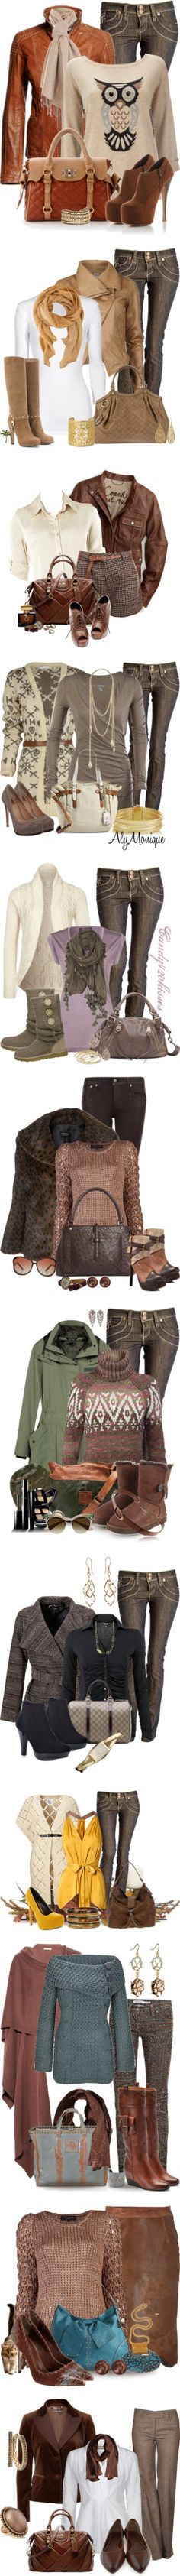 """""""Pick One"""" by jackie22 ❤ liked on Polyvore"""